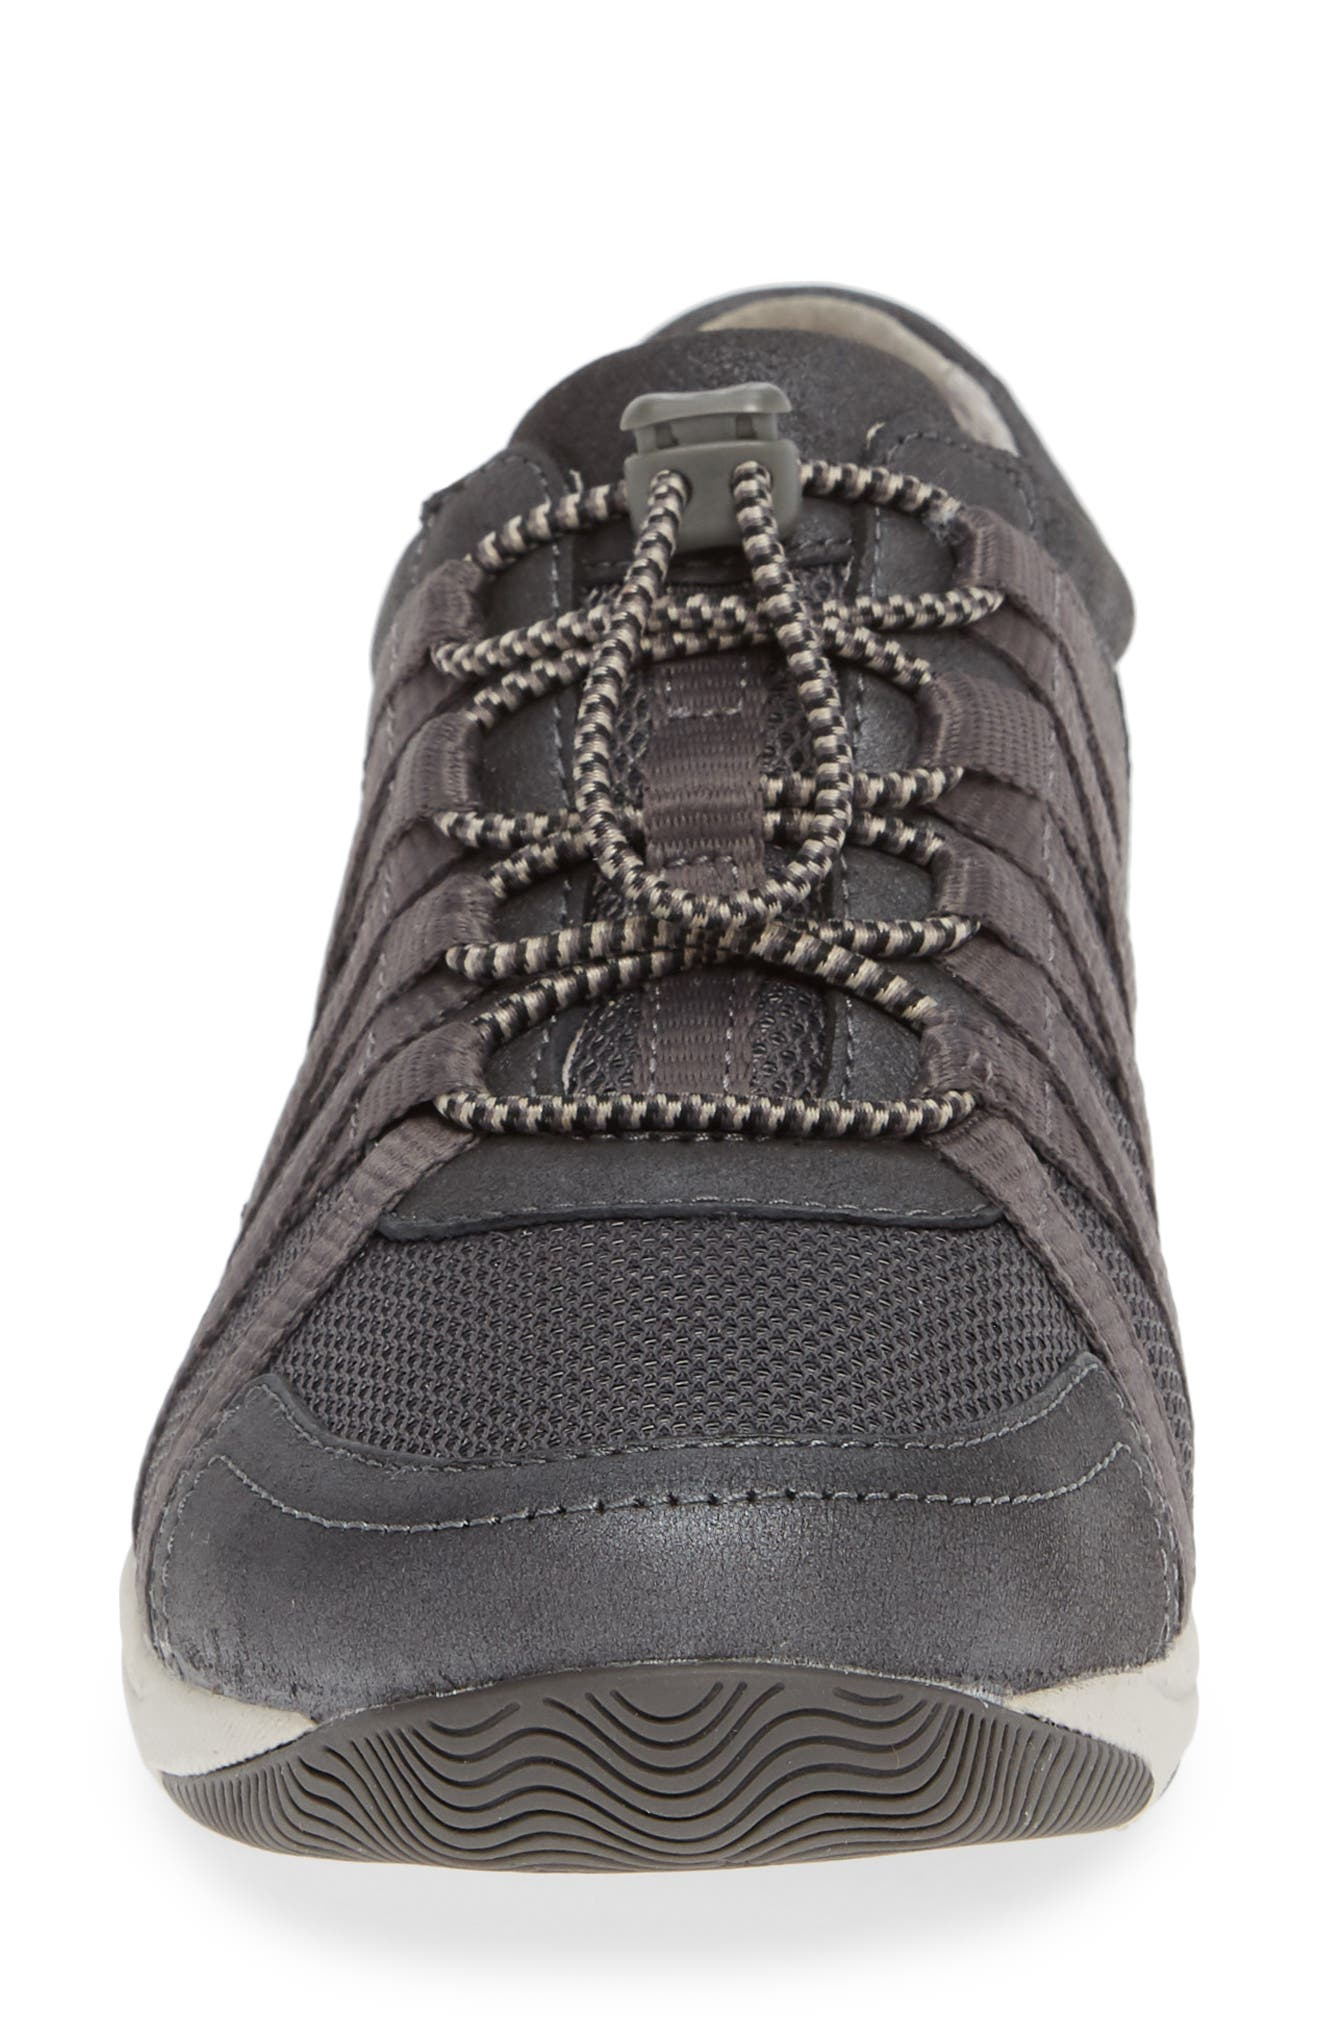 Halifax Collection Honor Sneaker,                             Alternate thumbnail 4, color,                             034